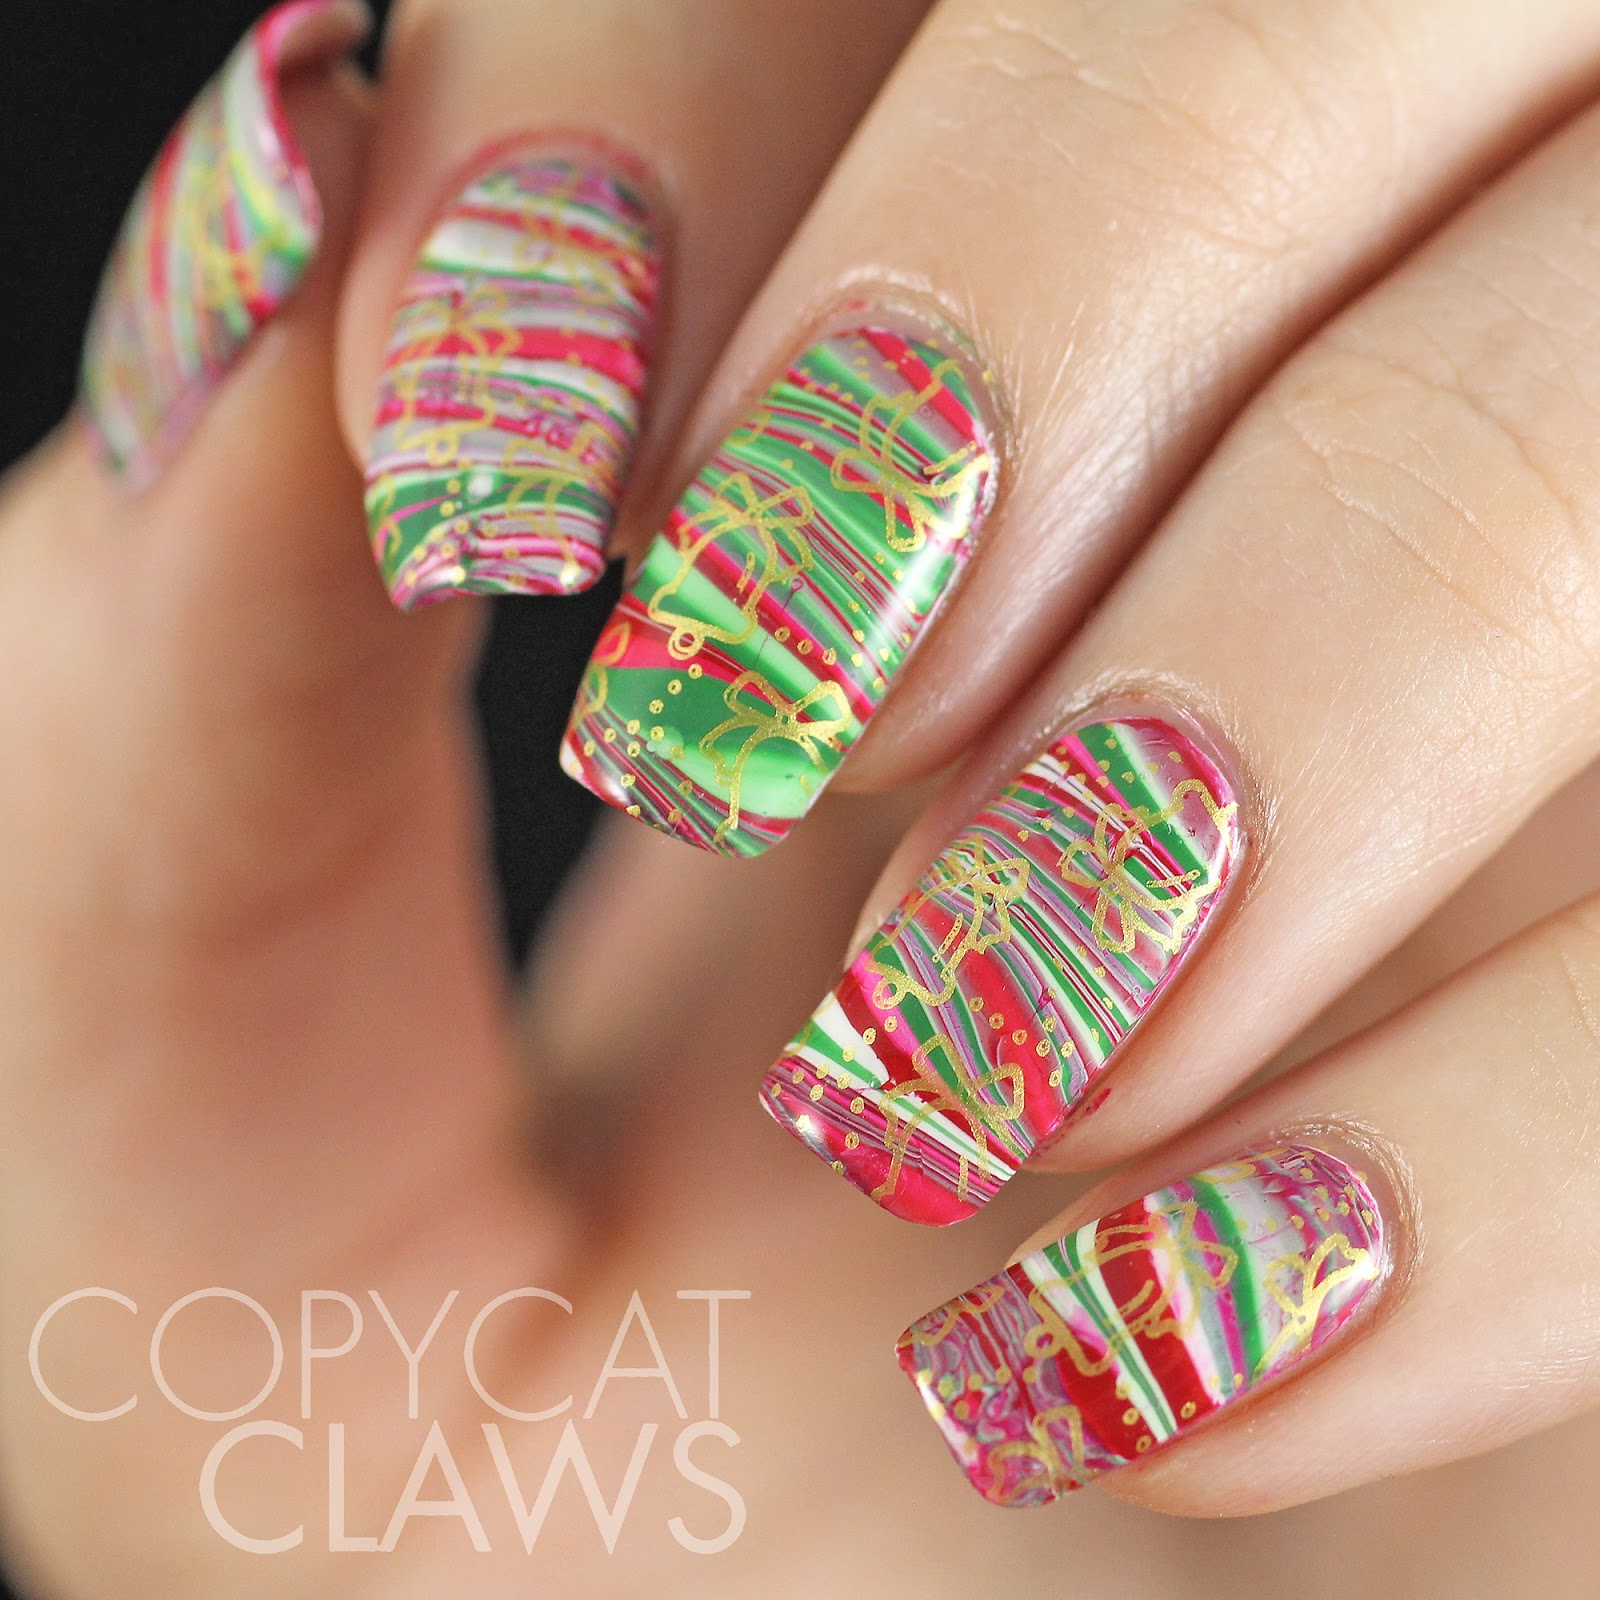 Copycat claws hpb presents christmas water marble nail art hpb presents christmas water marble nail art prinsesfo Gallery